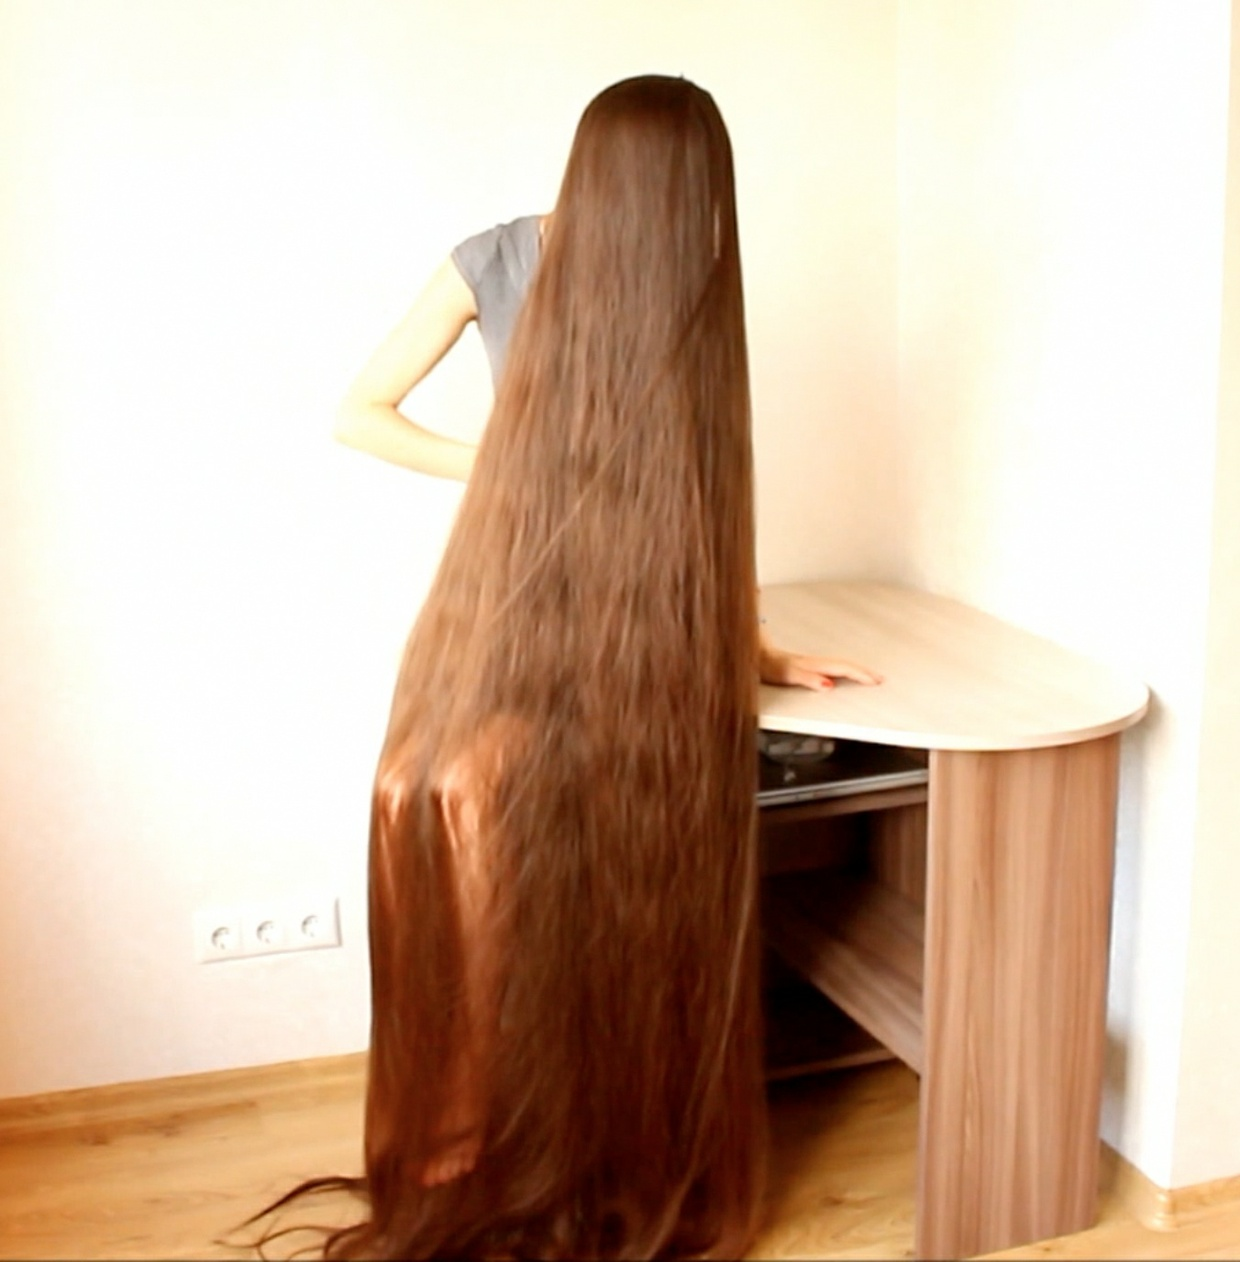 VIDEO - Longest hair ever